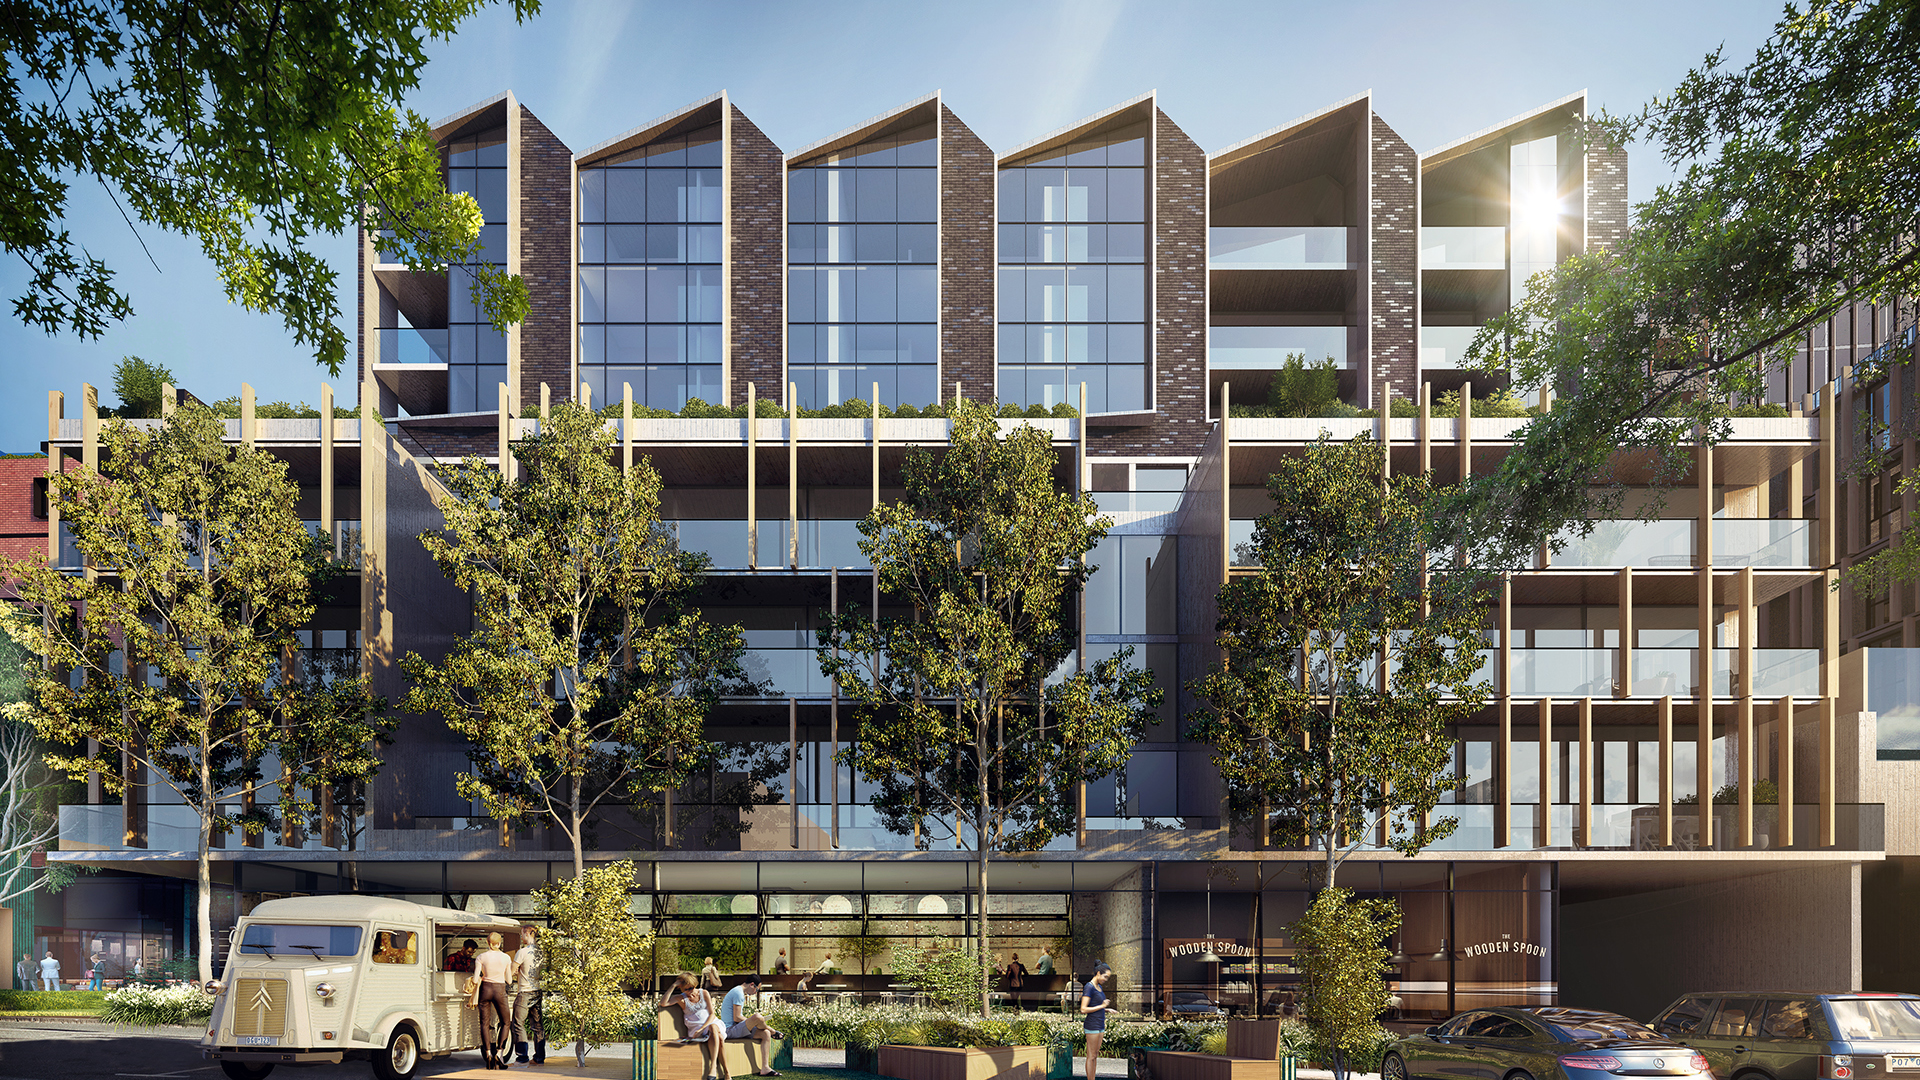 4 309 185 rosslyn street west melbourne vic 3003 off the plan